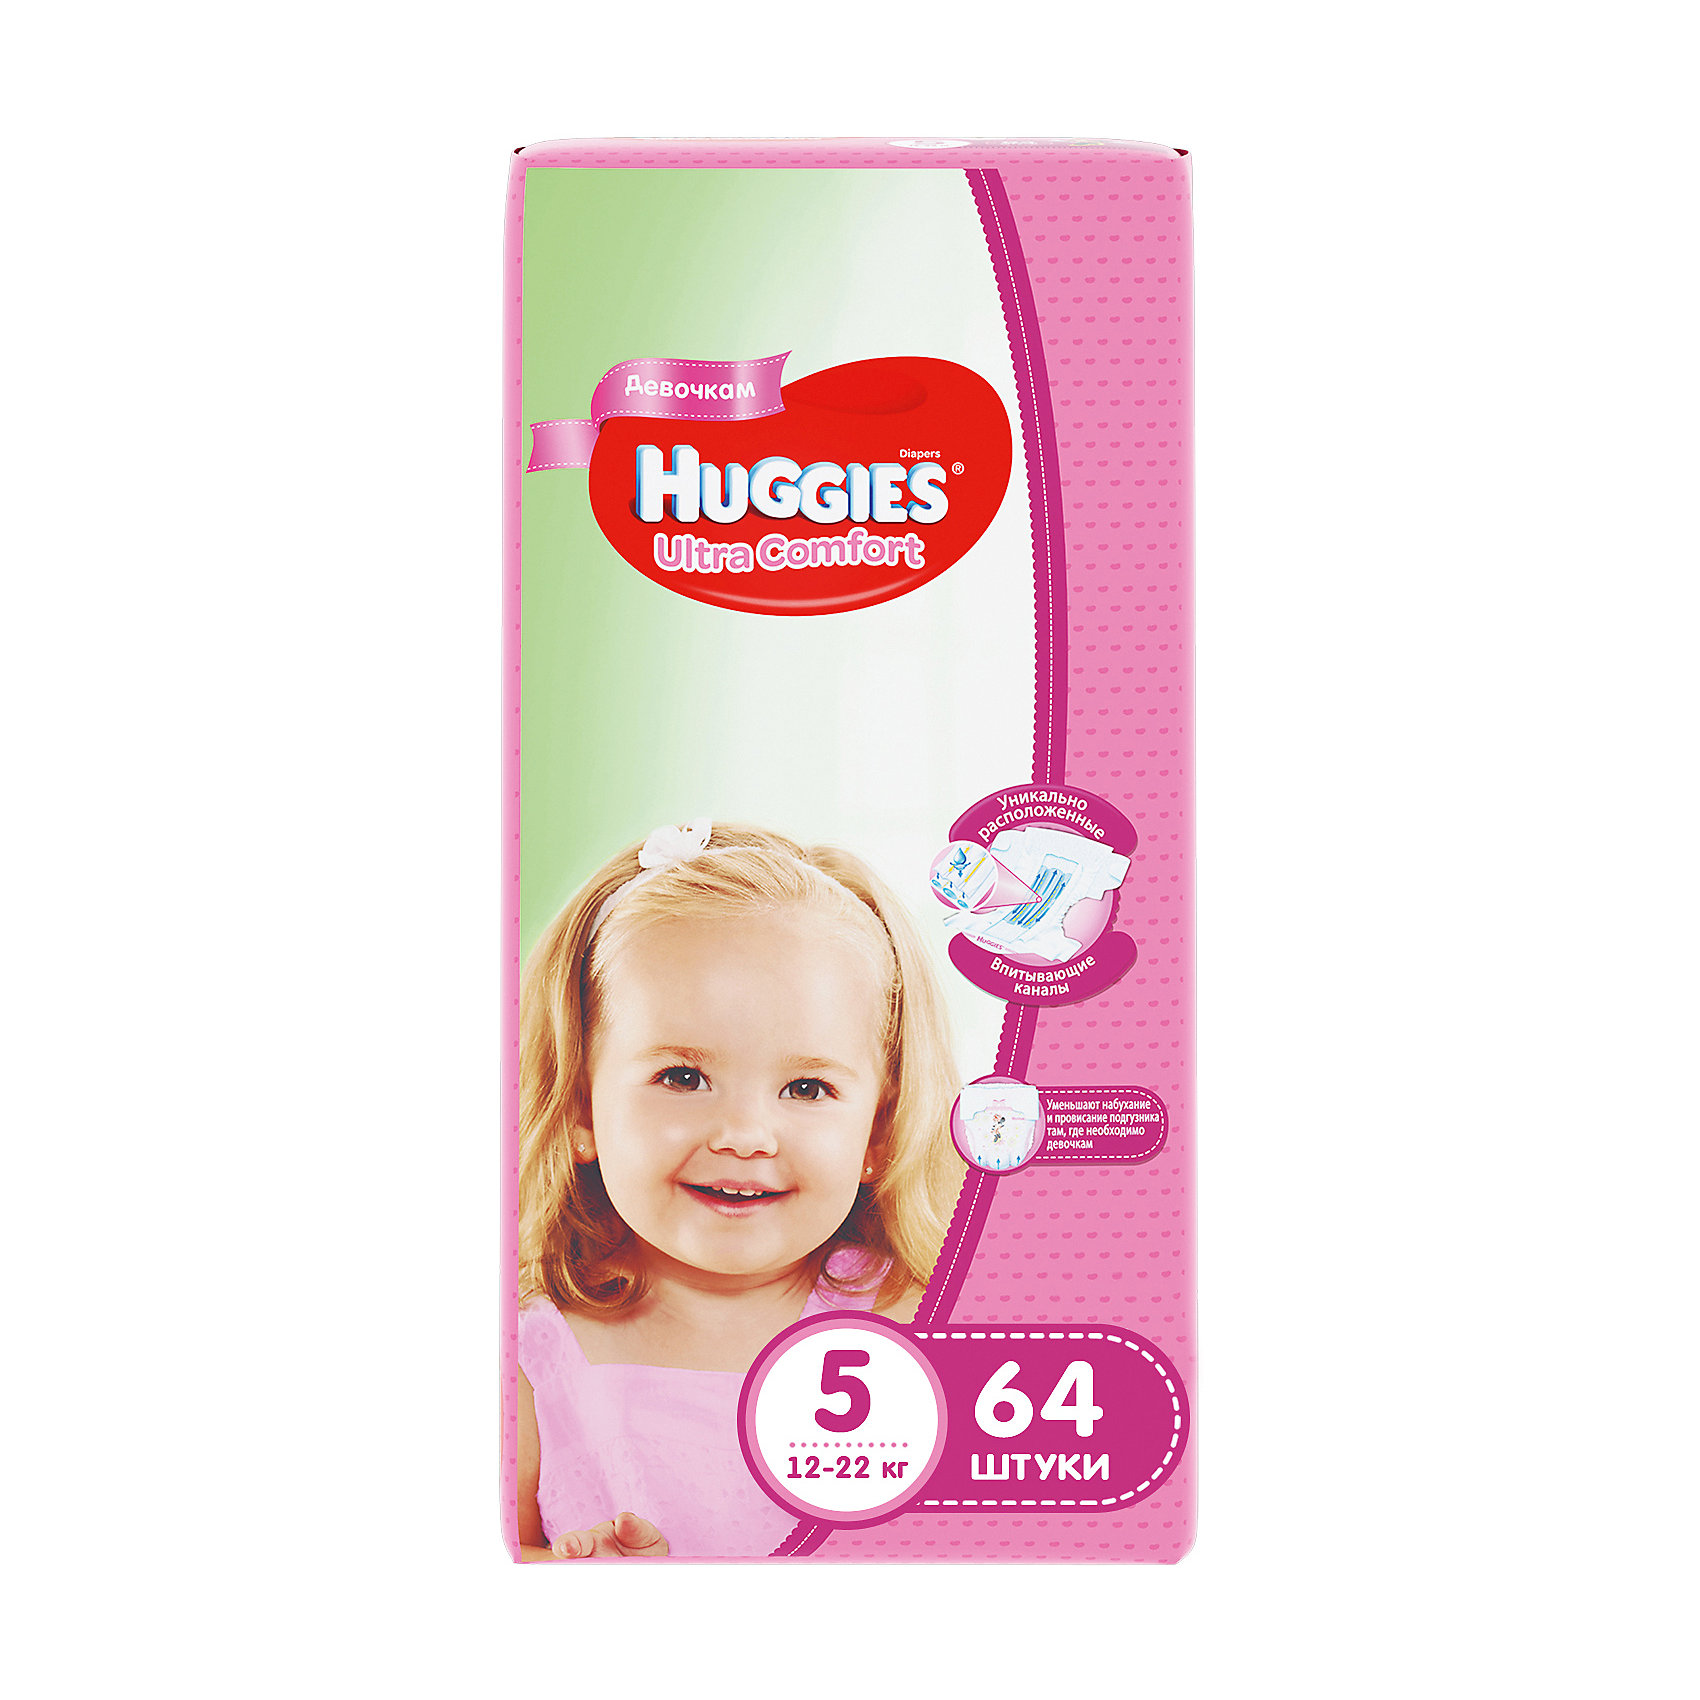 ���������� Huggies Ultra Comfort ��� ������� Giga Pack (5) 12-22 ��, 64 ��. (HUGGIES)